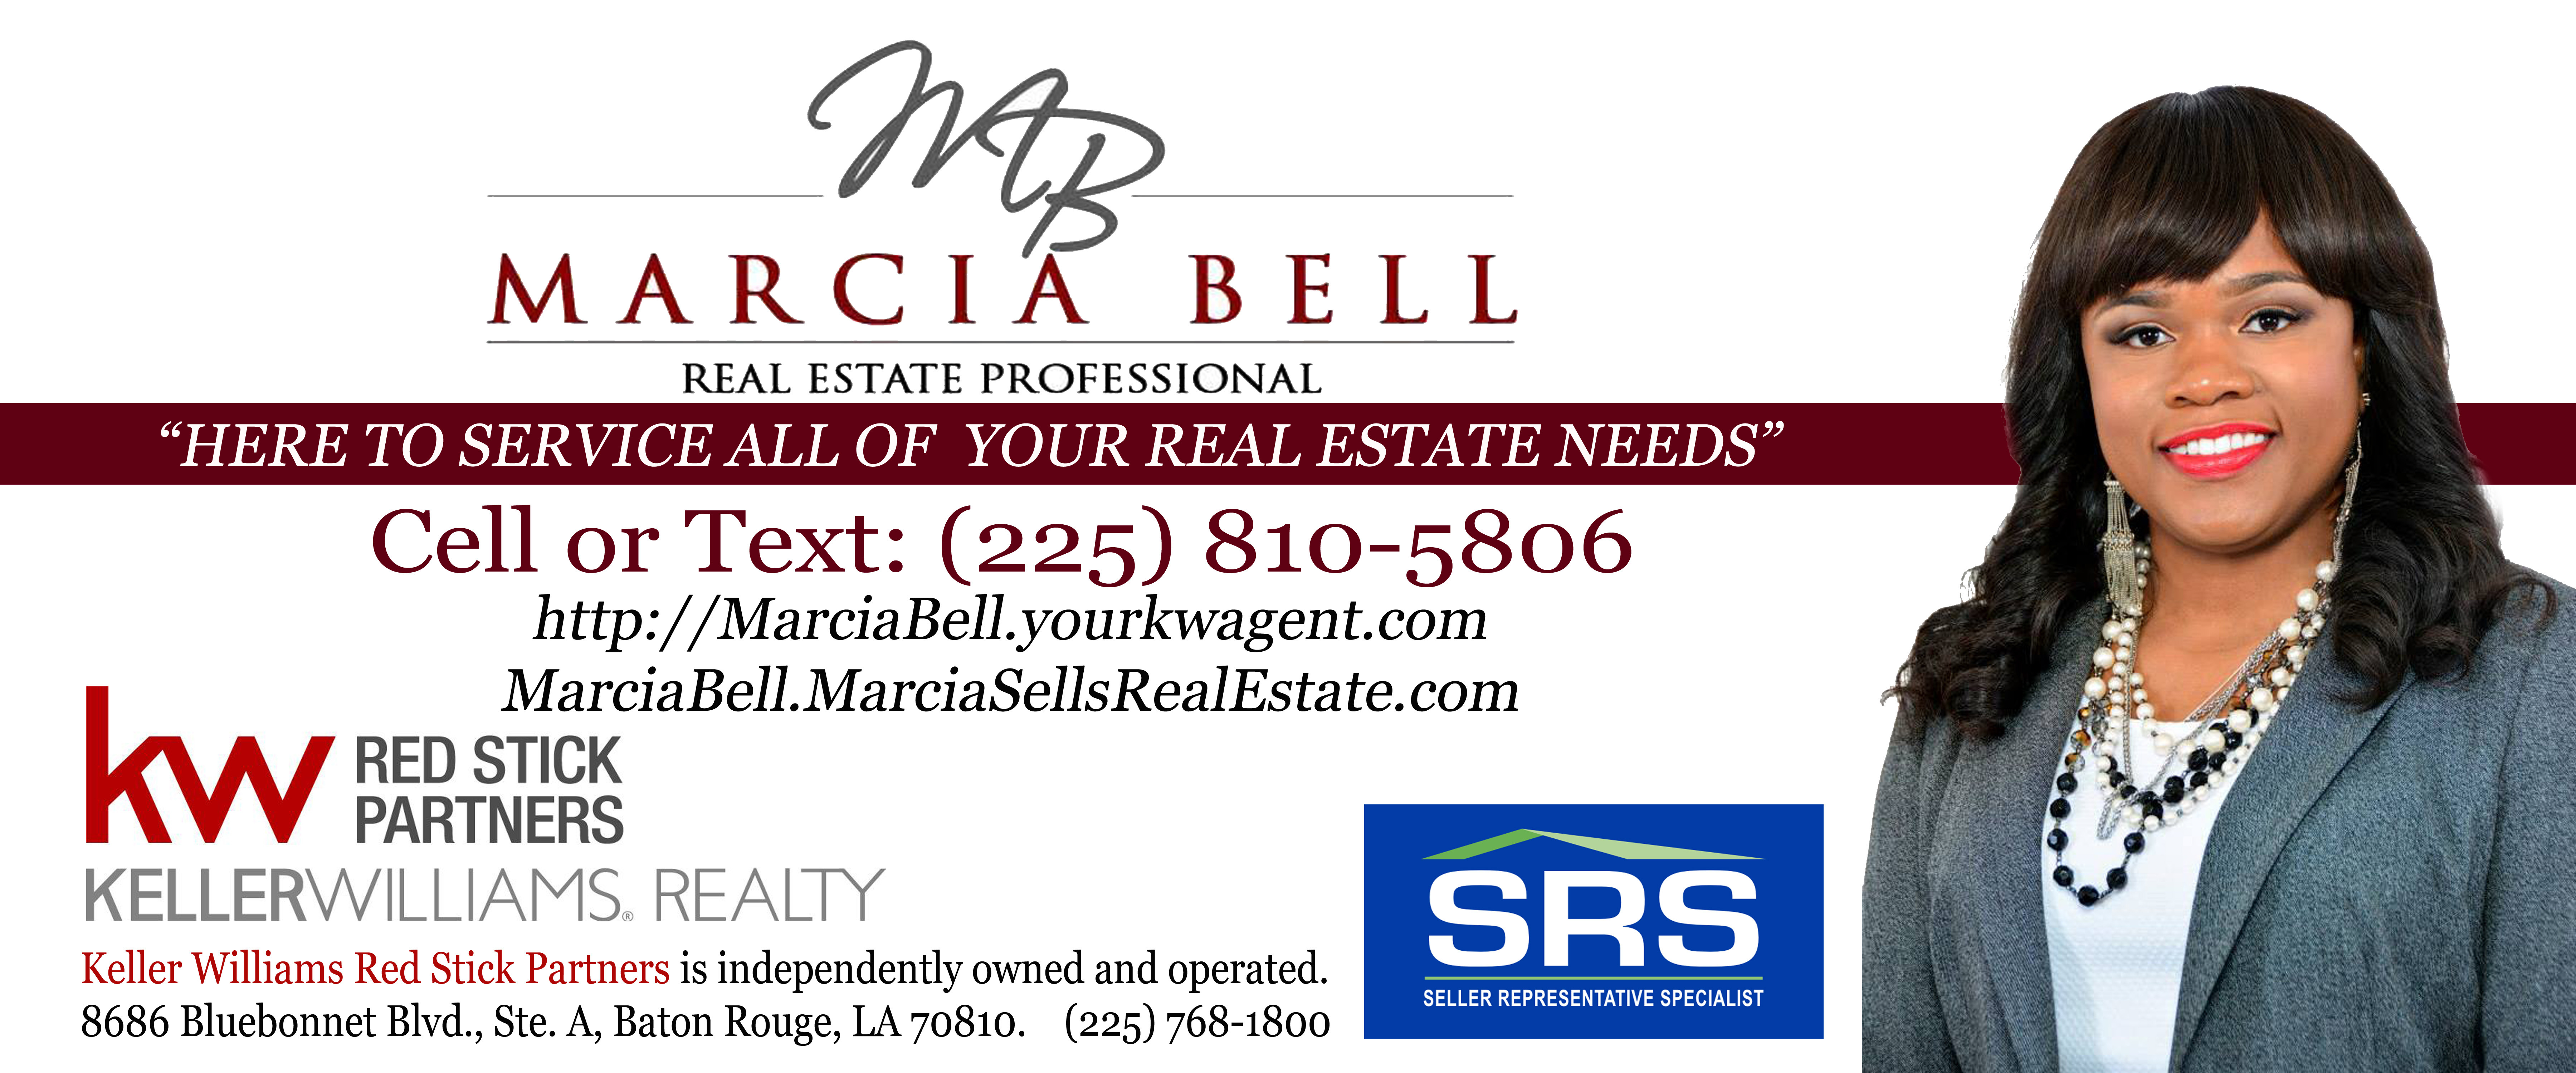 644 South Blvd Baton Rouge Homes for Sale Baton Rouge Marcia Bell marciasells@kw.com Live in Baton Rouge Homes near LSU Baton Rouge